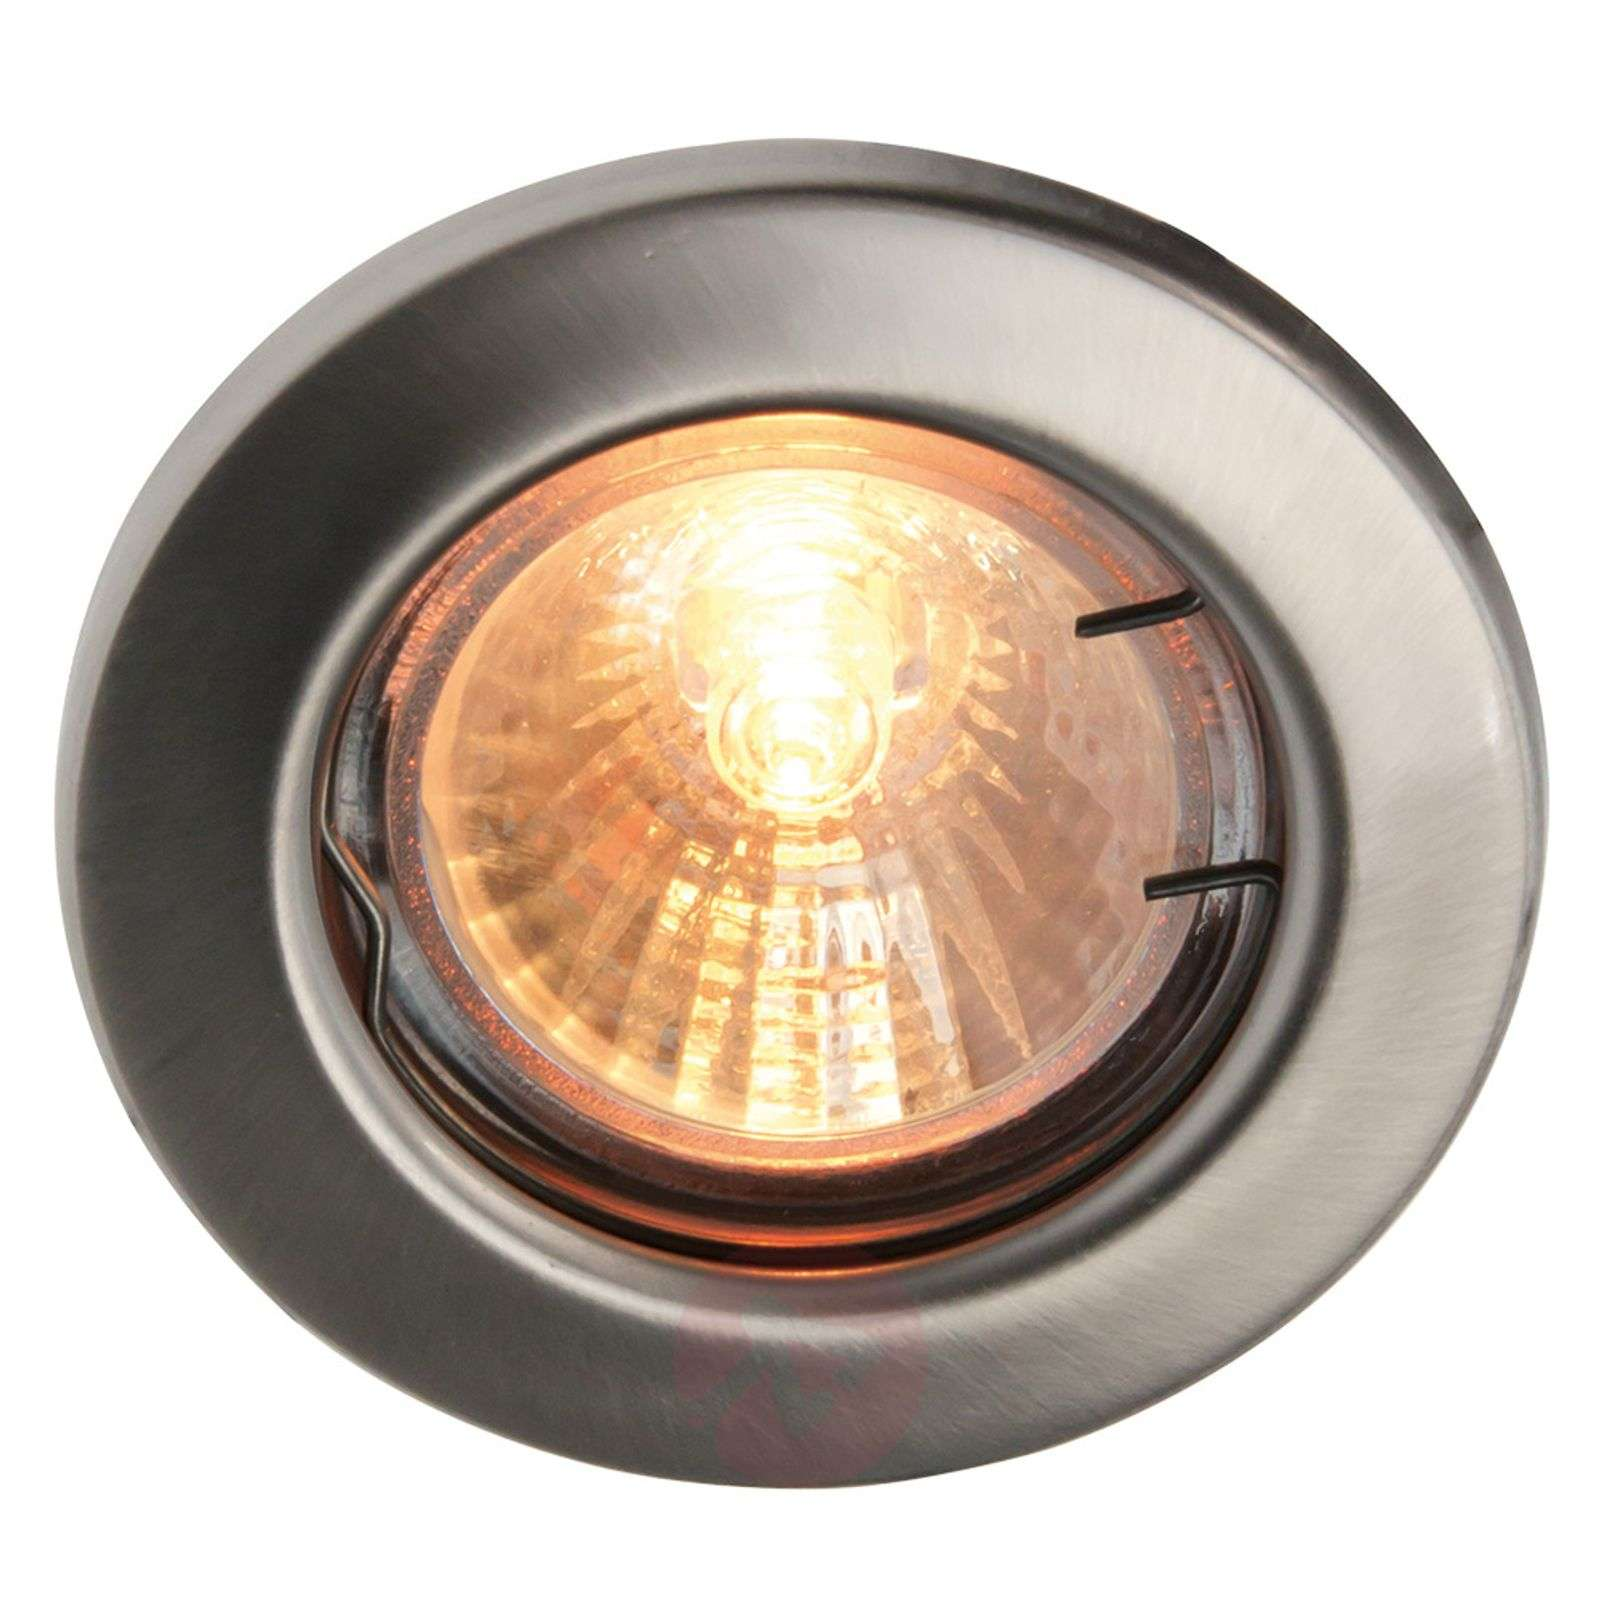 Low-voltage recessed light stainless steel MR16   Lights.co.uk